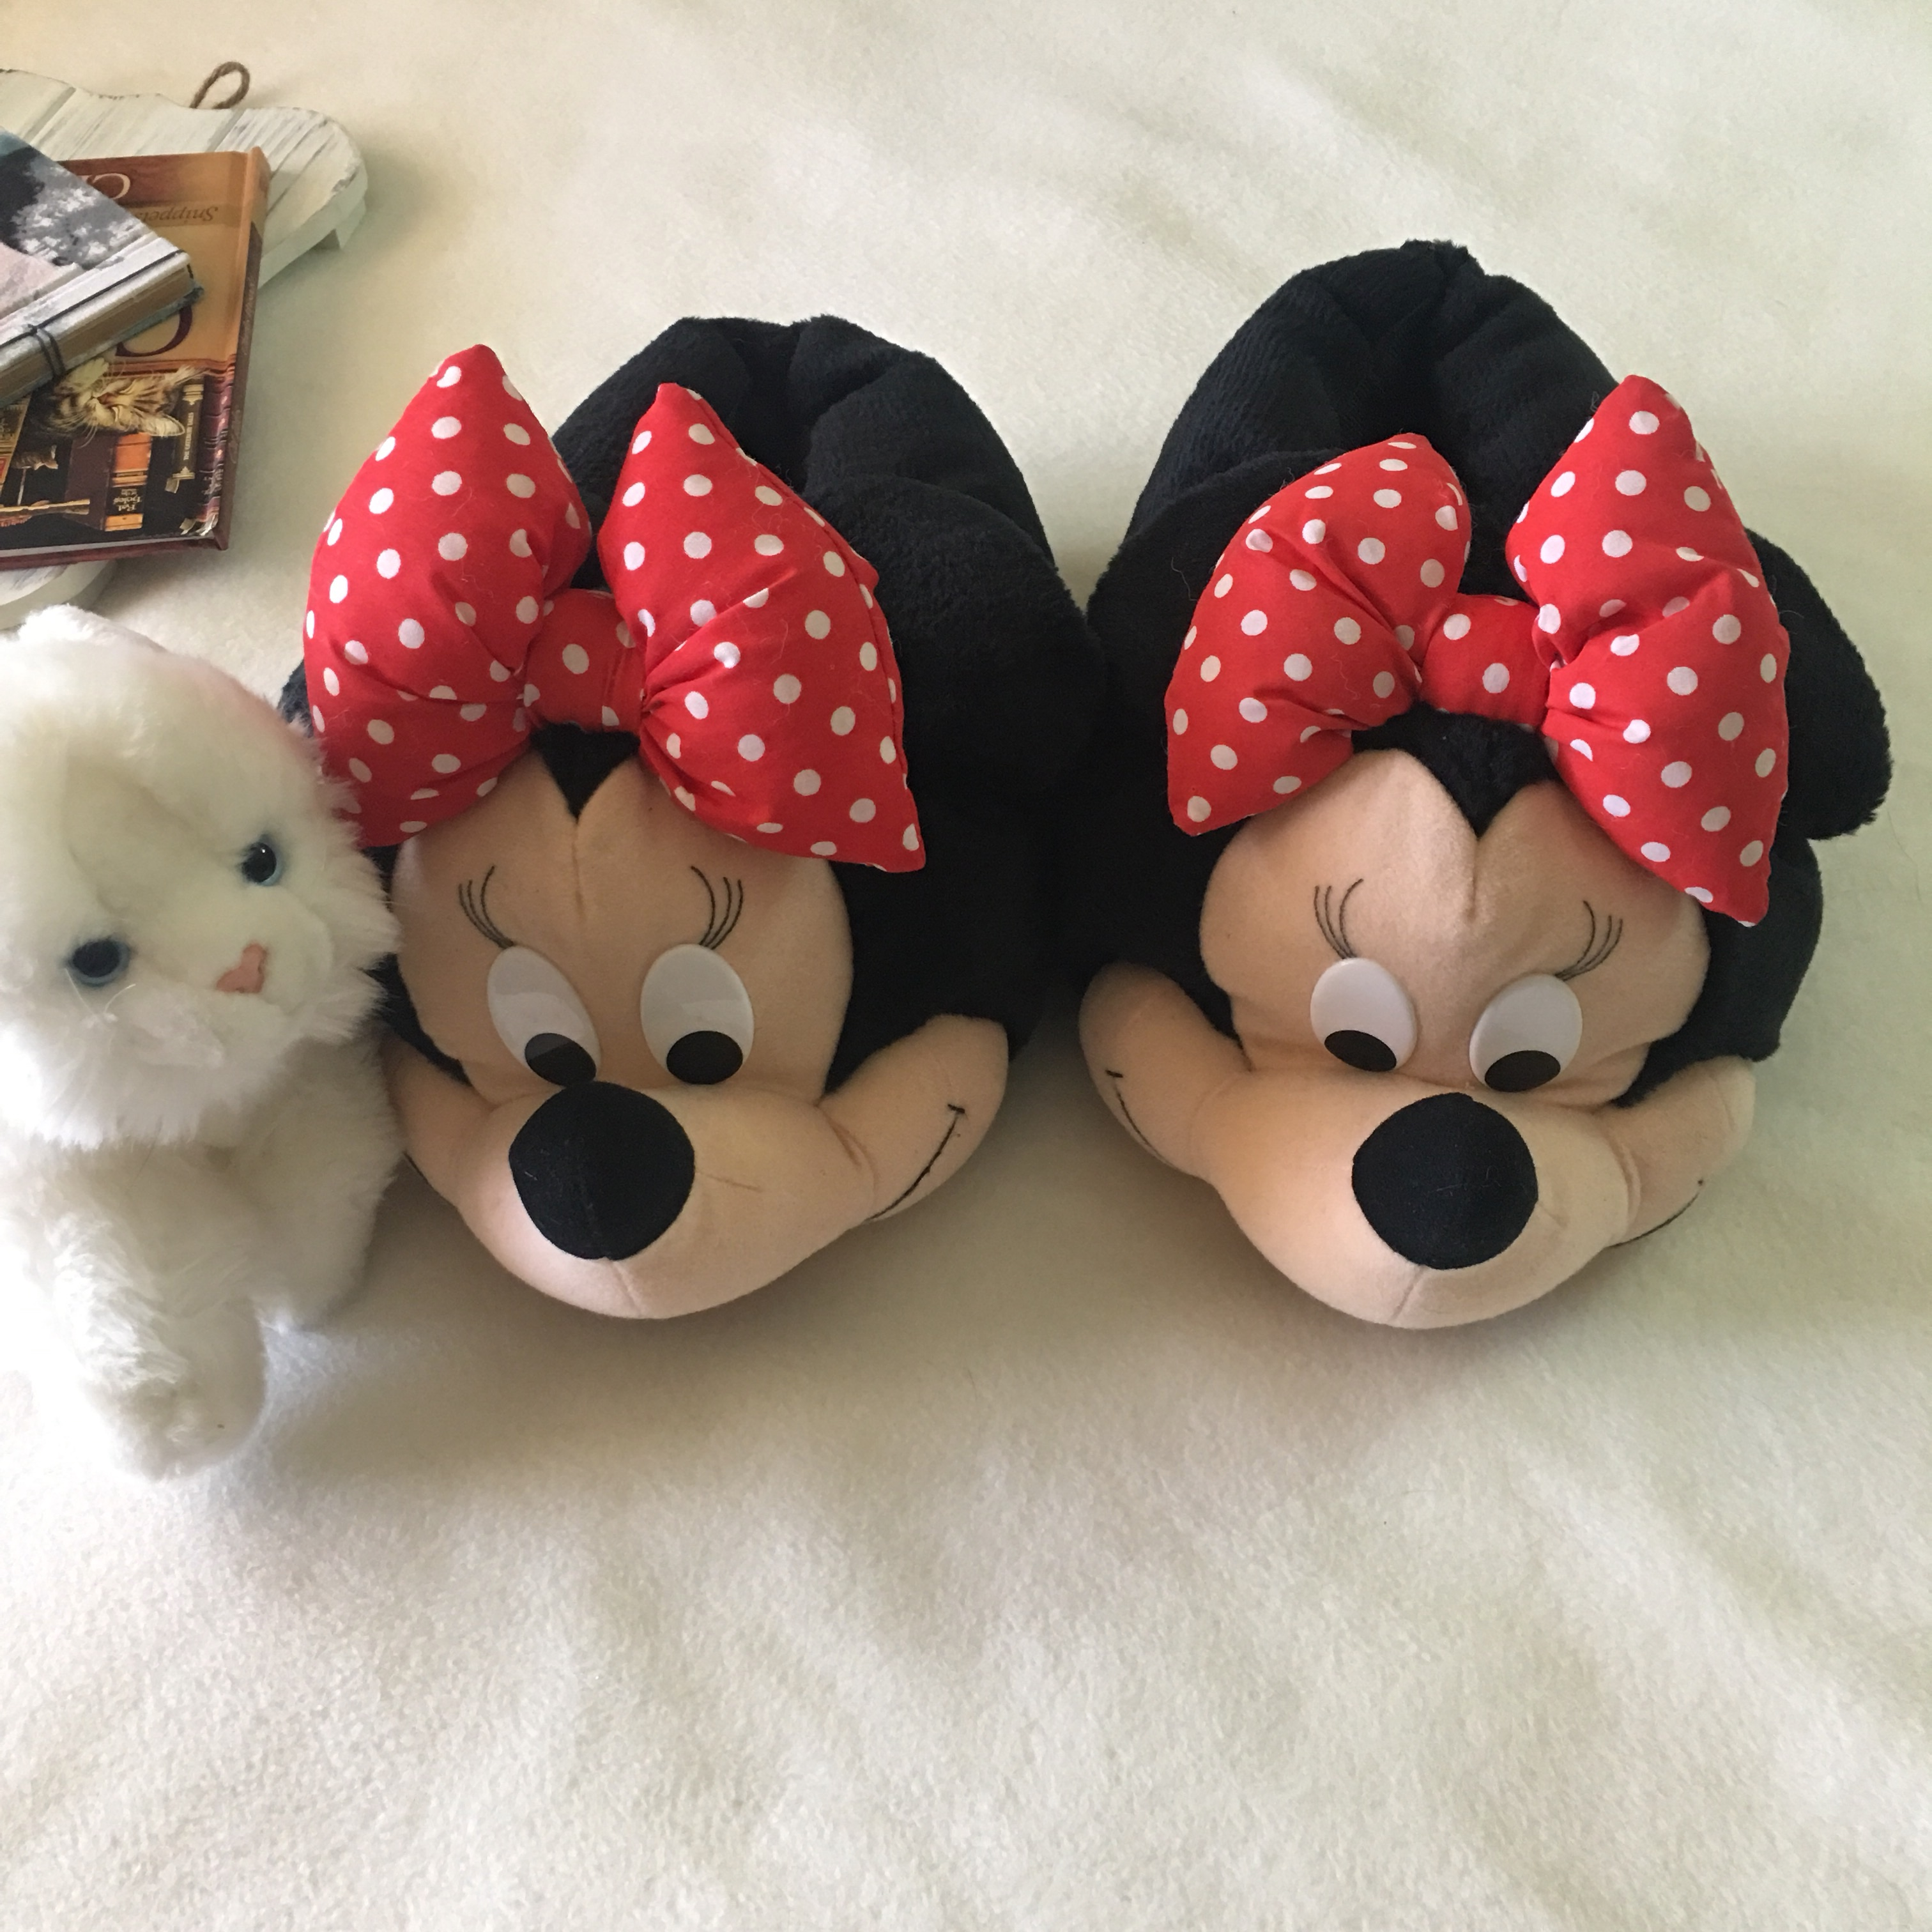 Super cute Minnie Mouse adult size